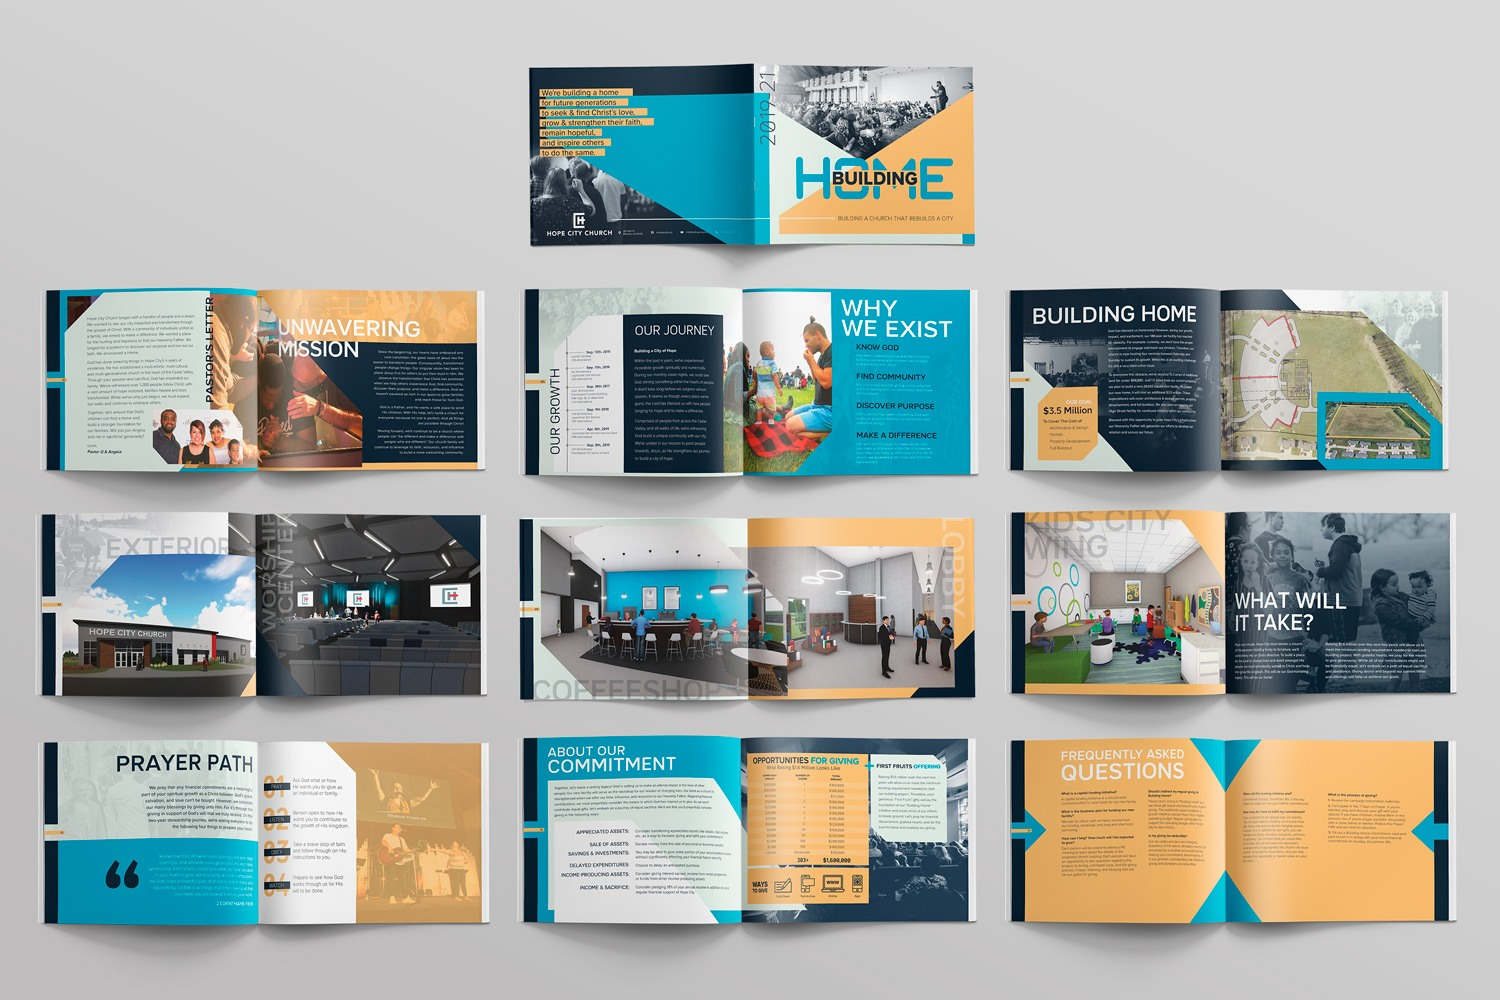 nondenominational church capital campaign brochure booklet themes design materials by abstract union